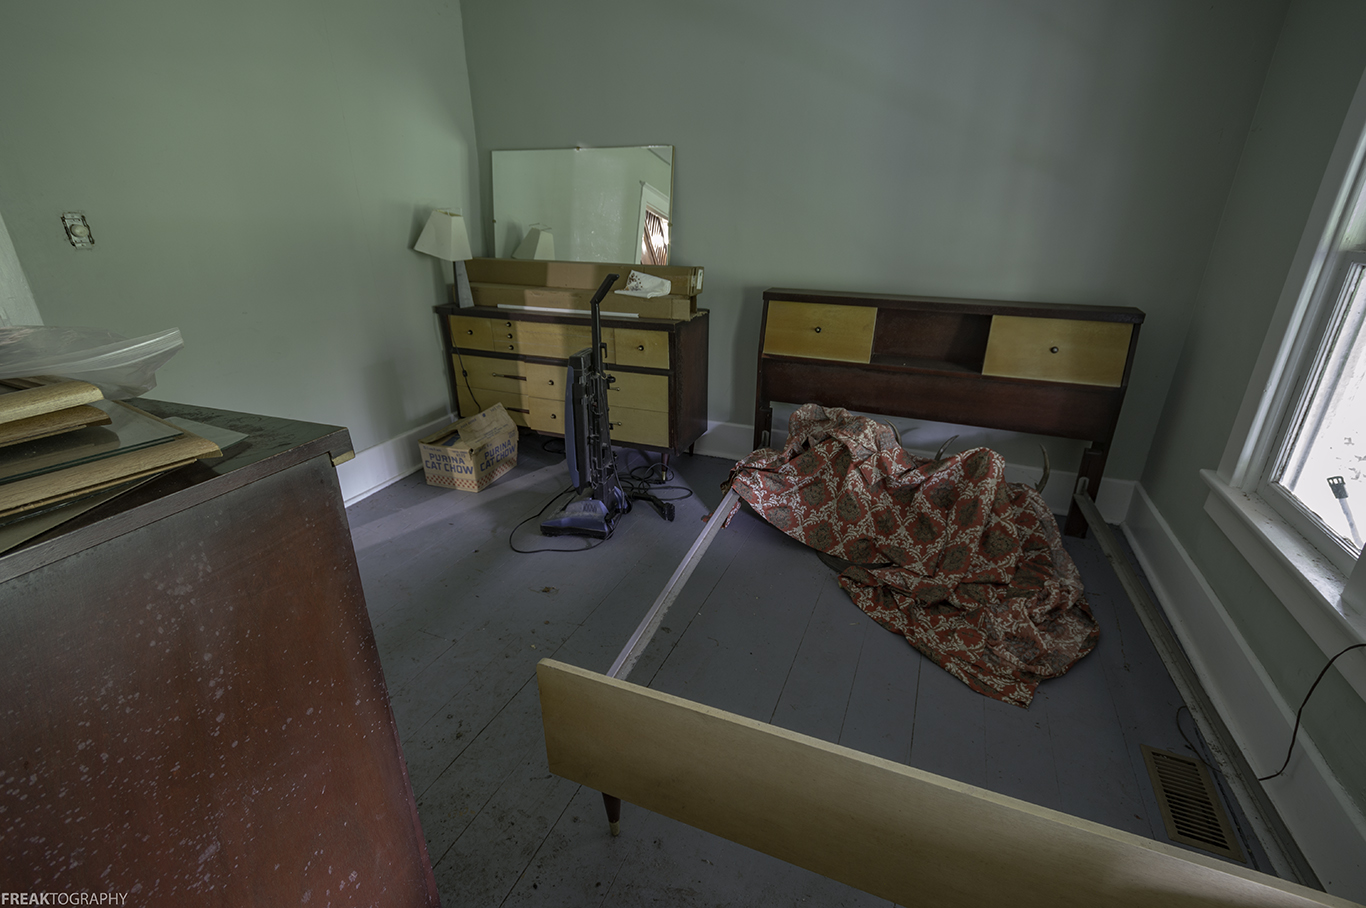 A sheet covers two strange items n the bedroom of an abandoned house